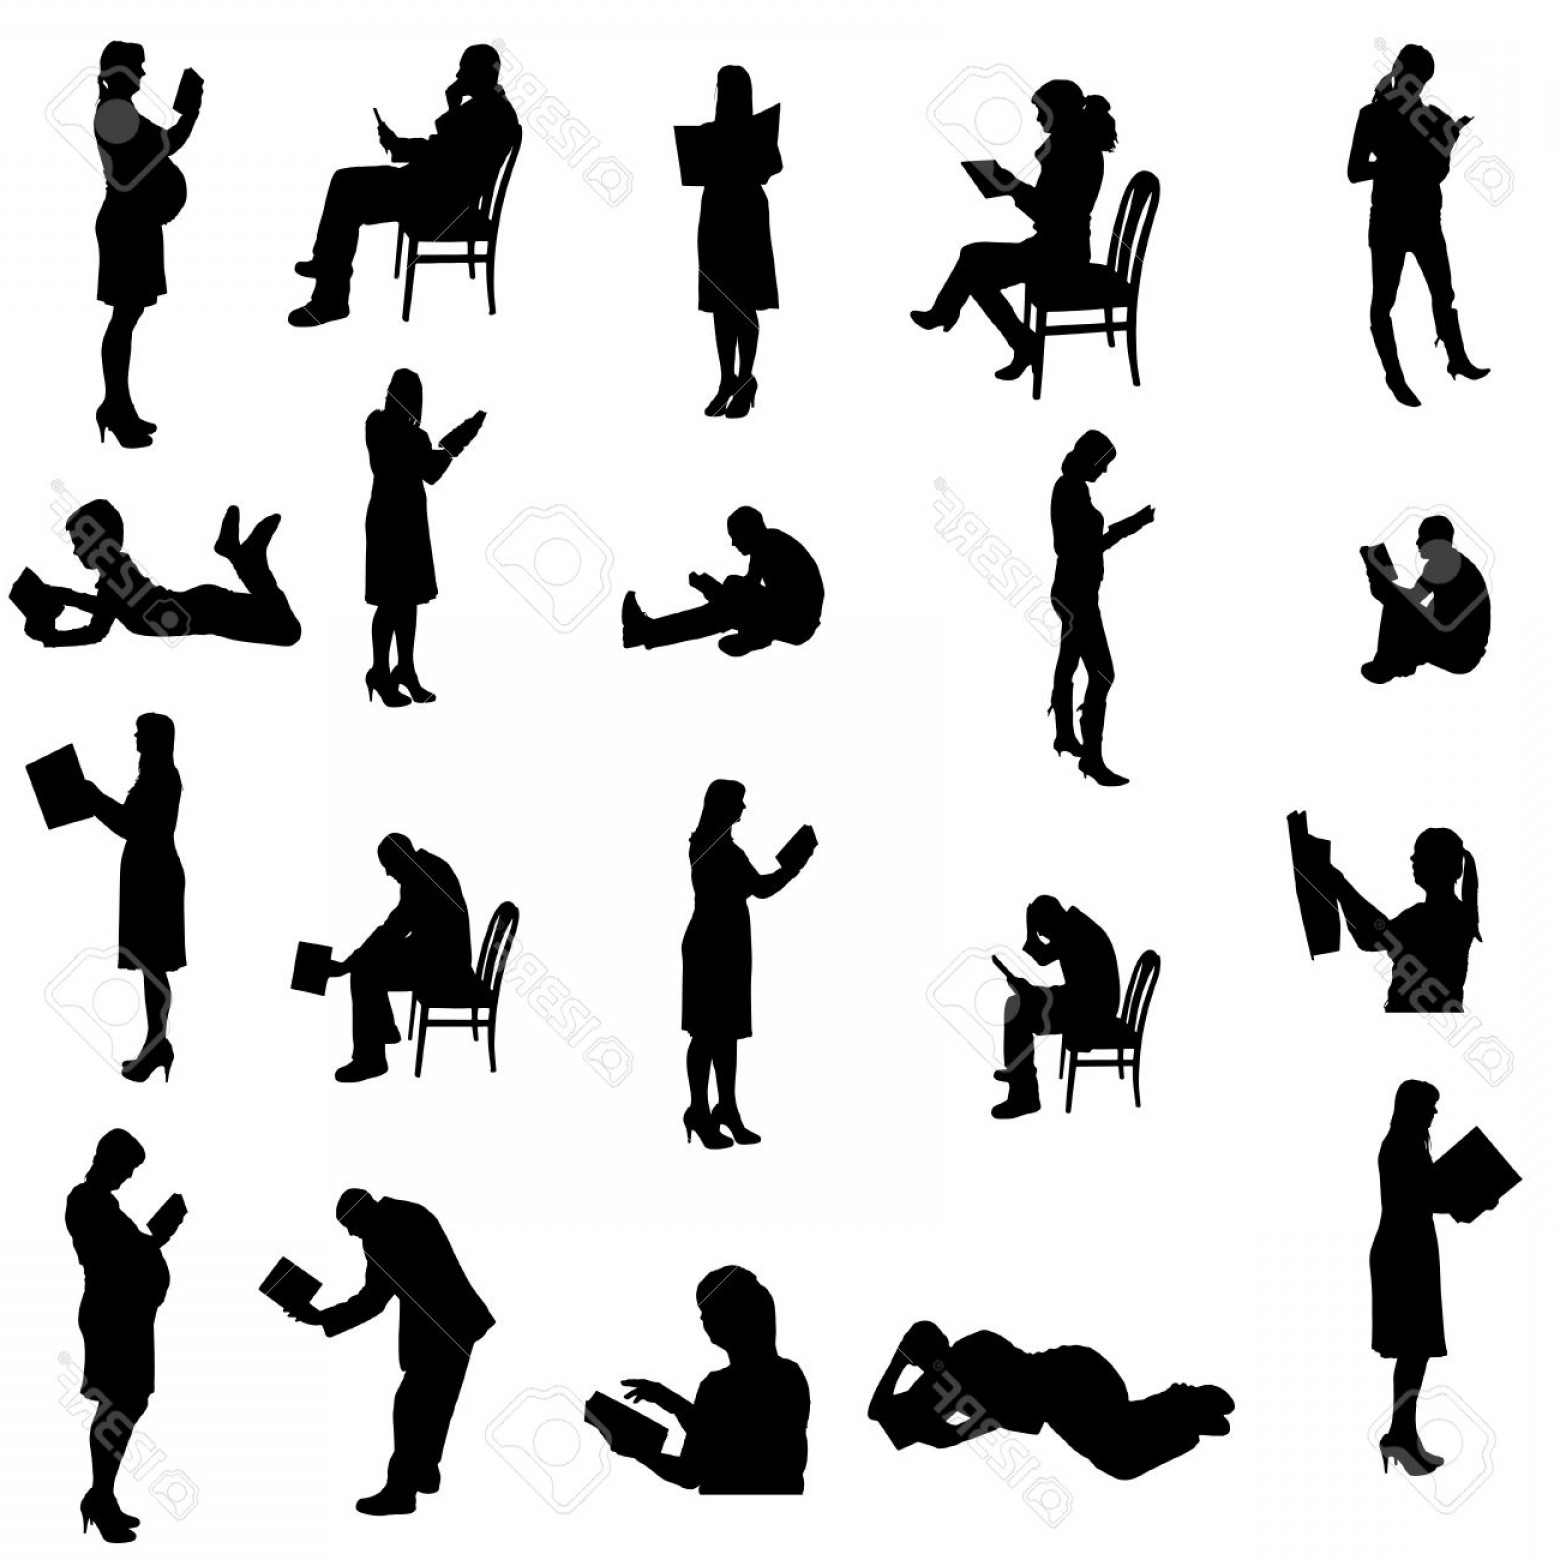 silhouette of a person sitting person sitting vector at vectorifiedcom collection of a of silhouette person sitting